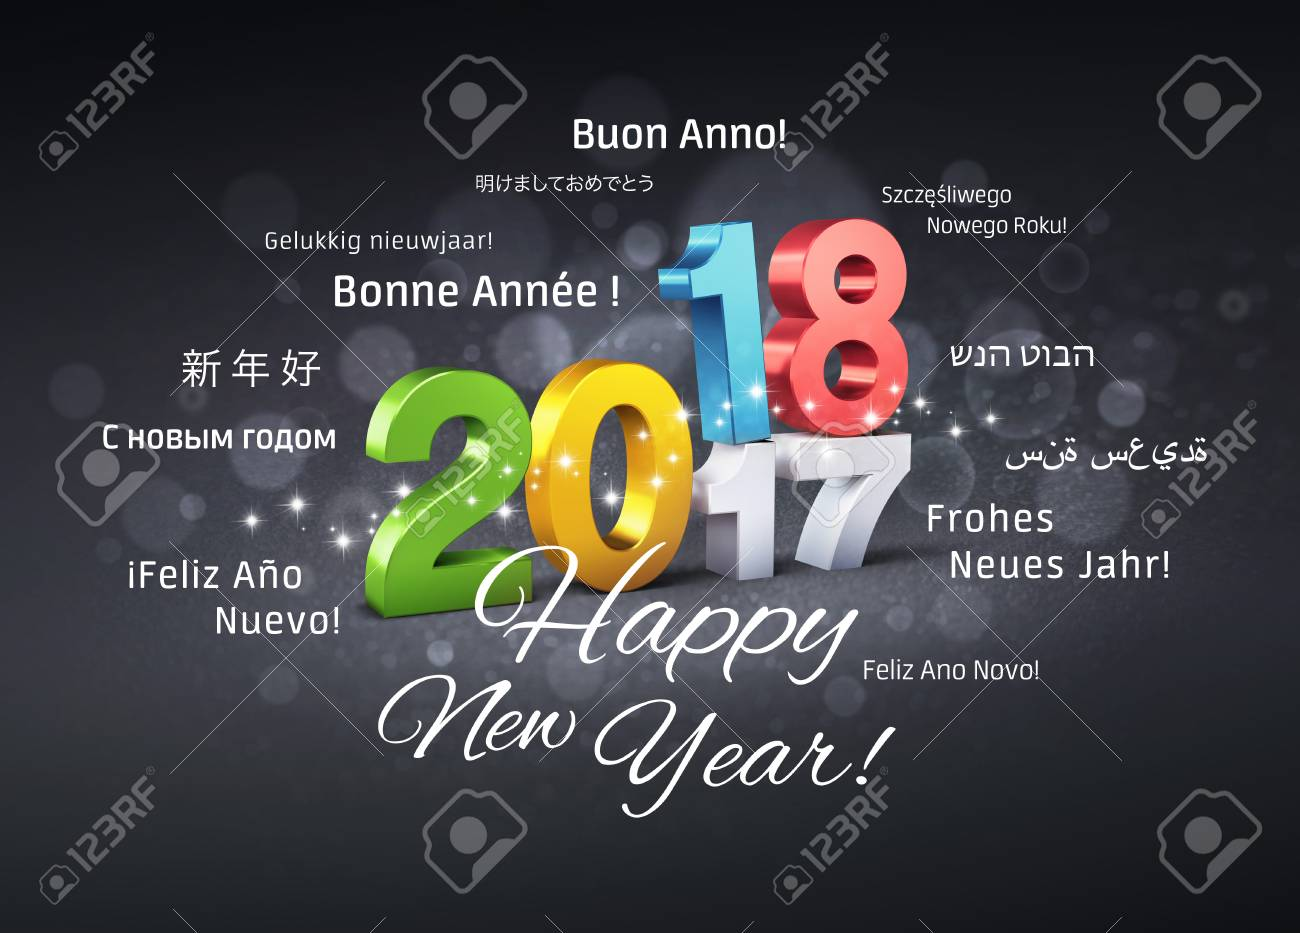 colorful date 2018 above 2017 and happy new year greetings in different languages on a